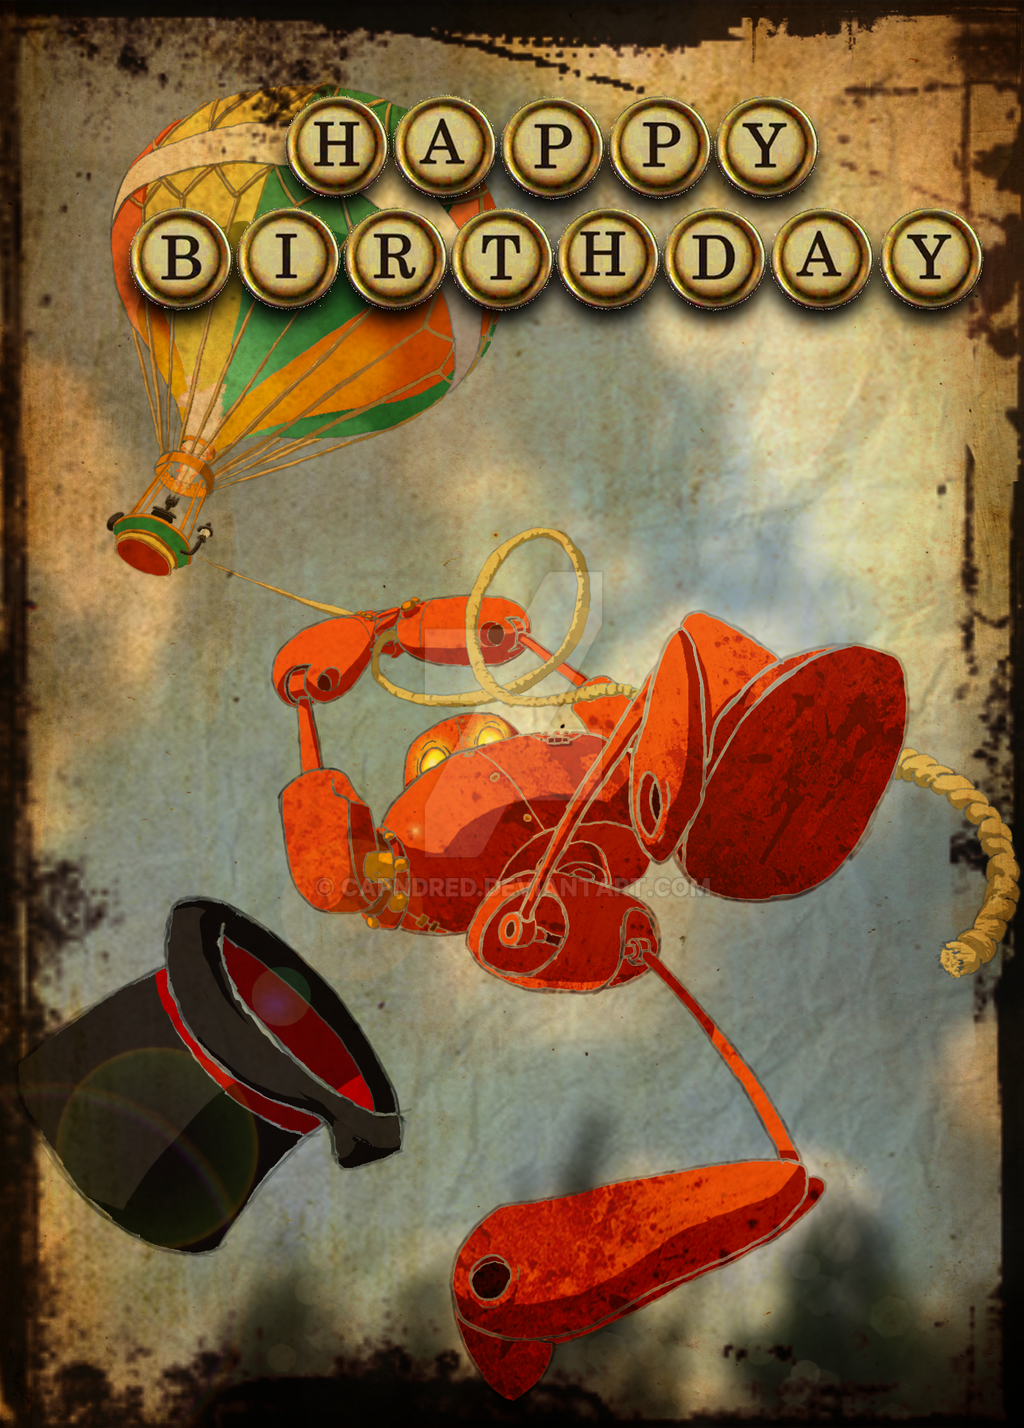 Steampunk Robot Birthday Card with The Coggingtons by CapnDred on – Steampunk Birthday Card